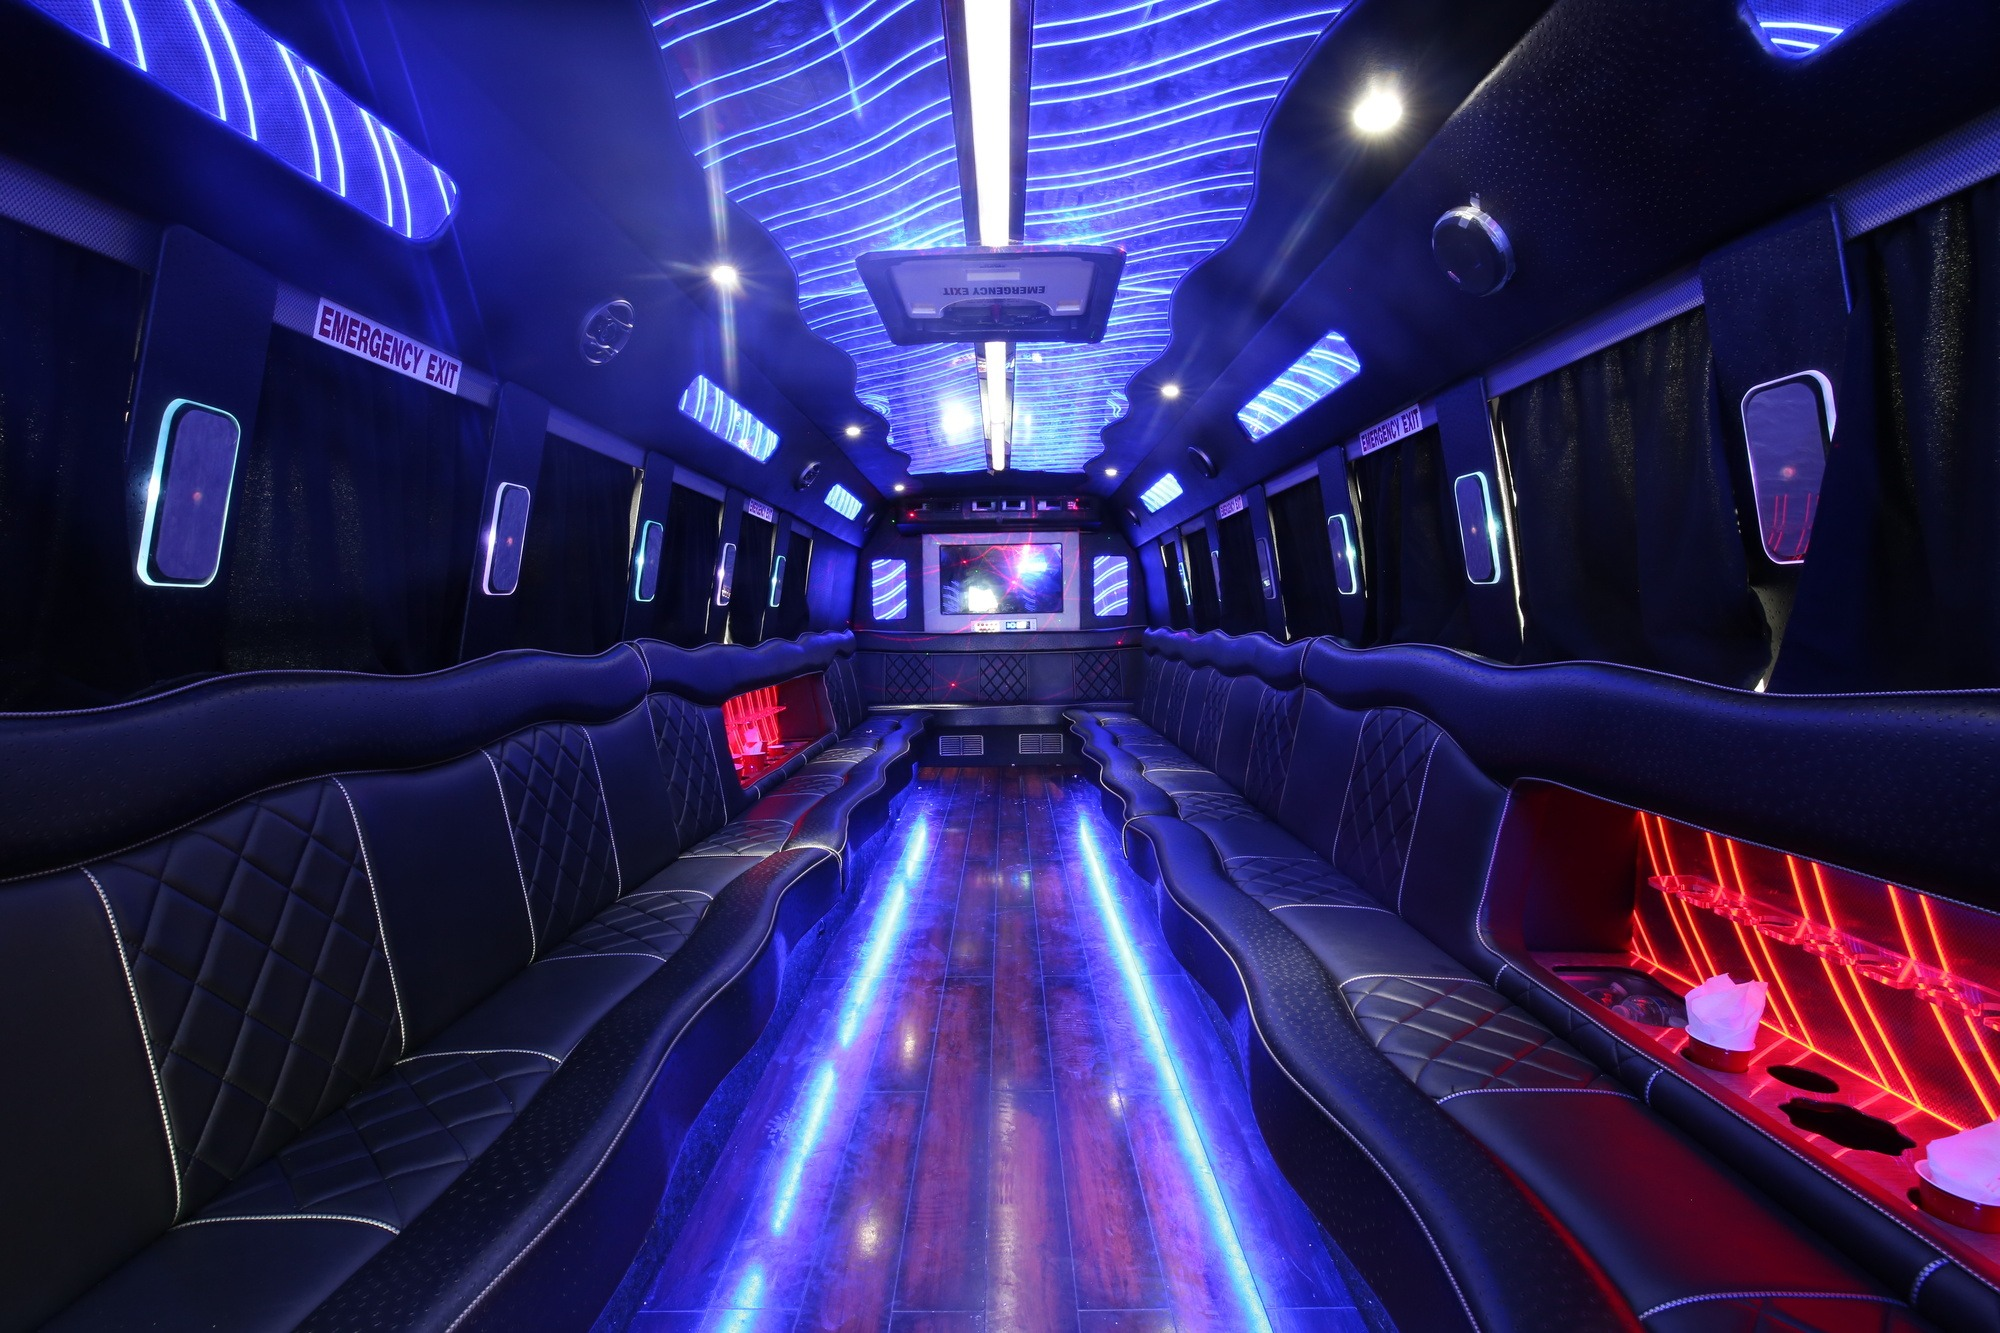 Avoiding Overly Aged Whiskey on a Party Bus